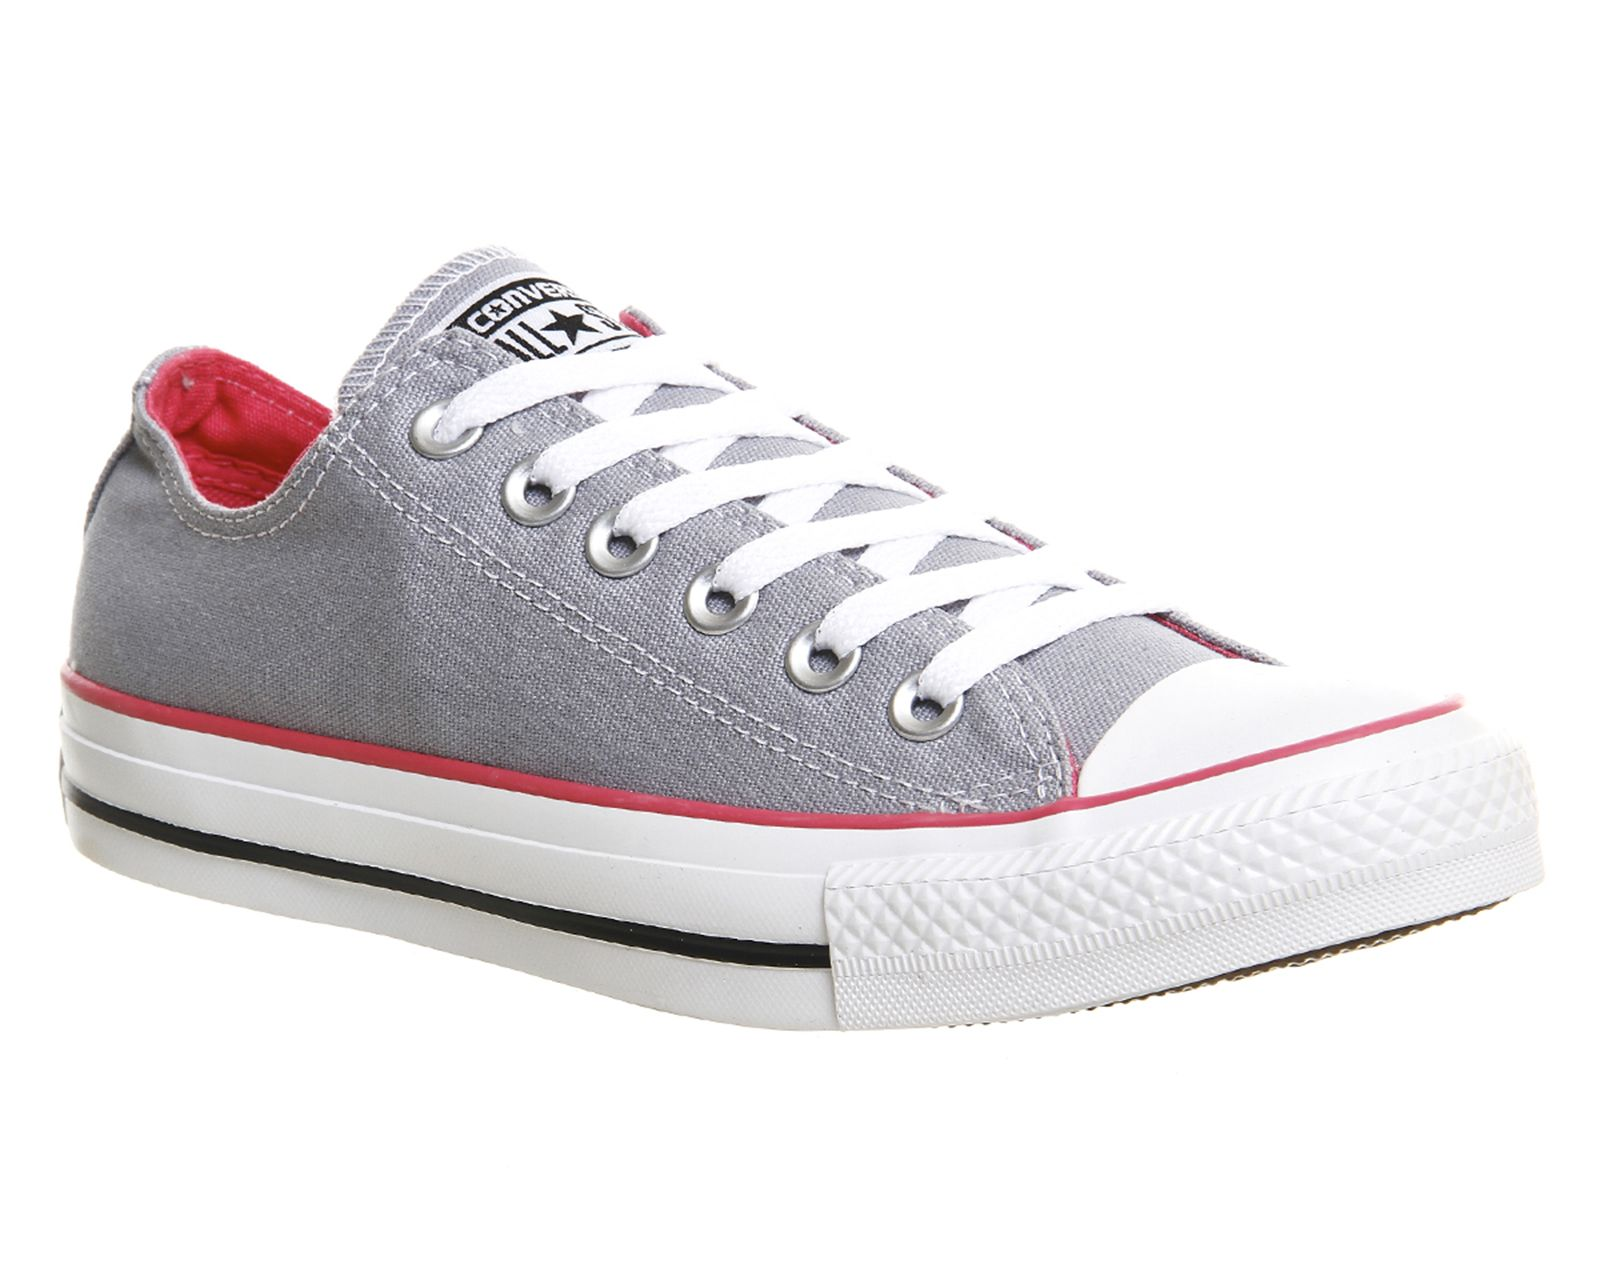 Converse All Star Low Grey Pink Canvas - Unisex Sports